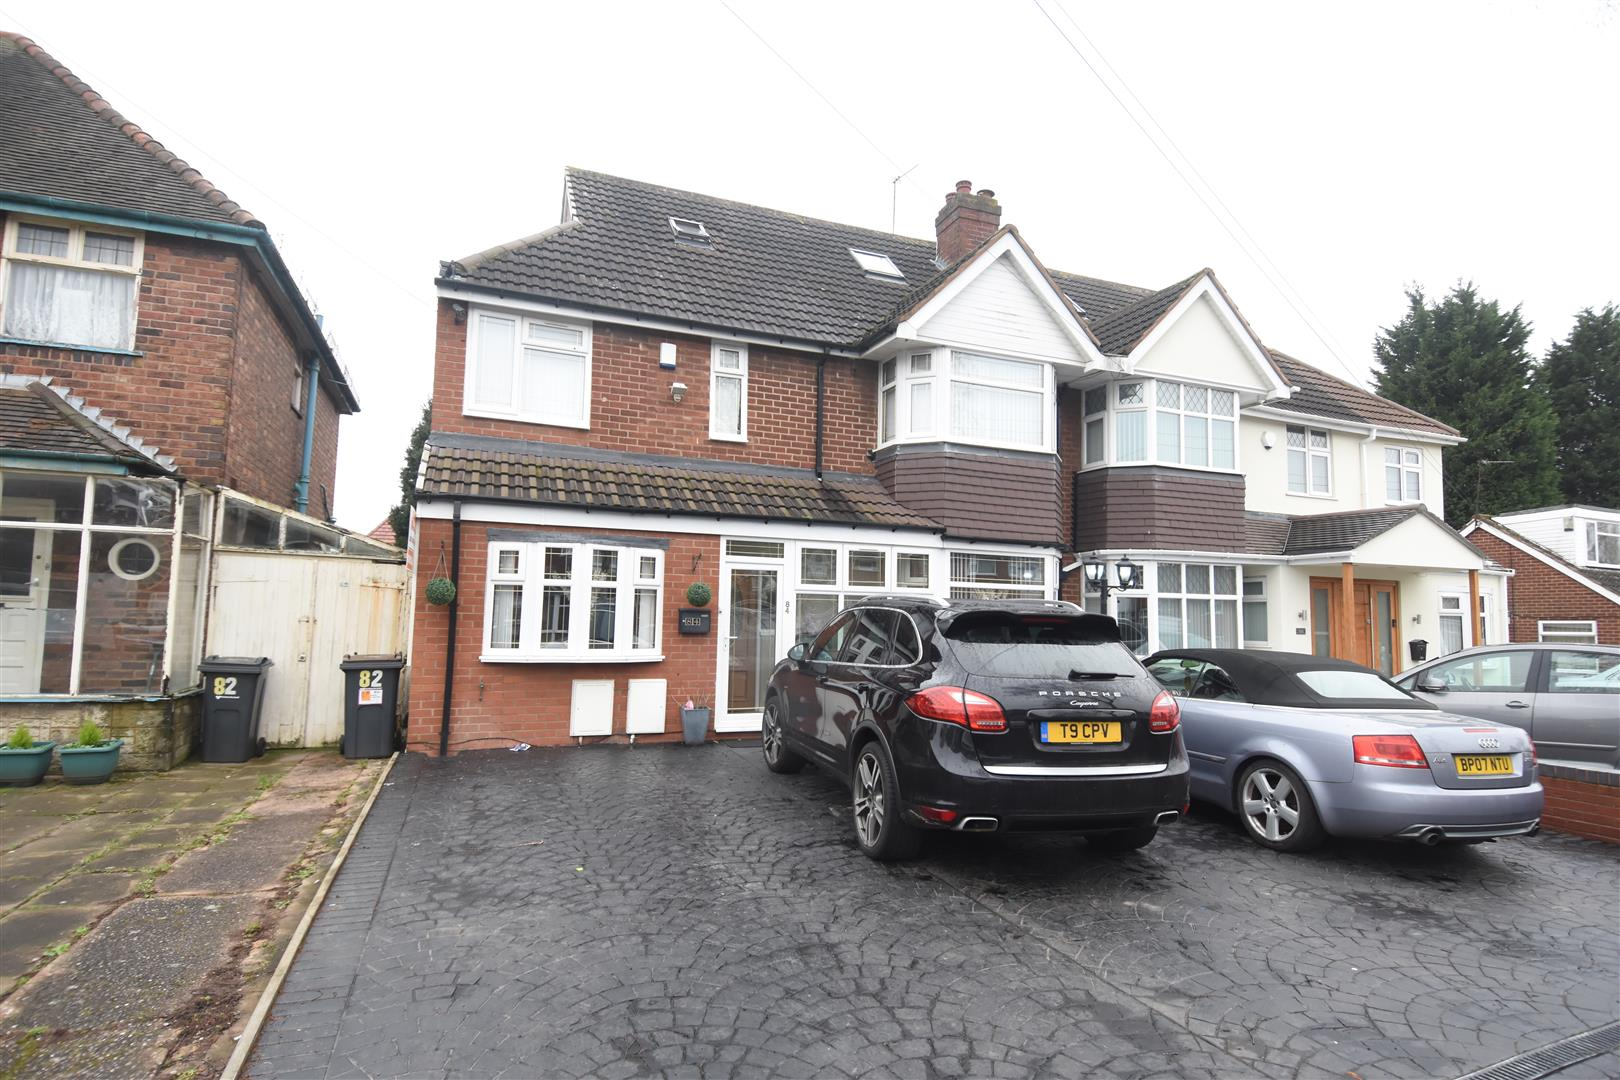 6 bed house for sale in Madison Avenue, Hodge Hill, Birmingham, B36